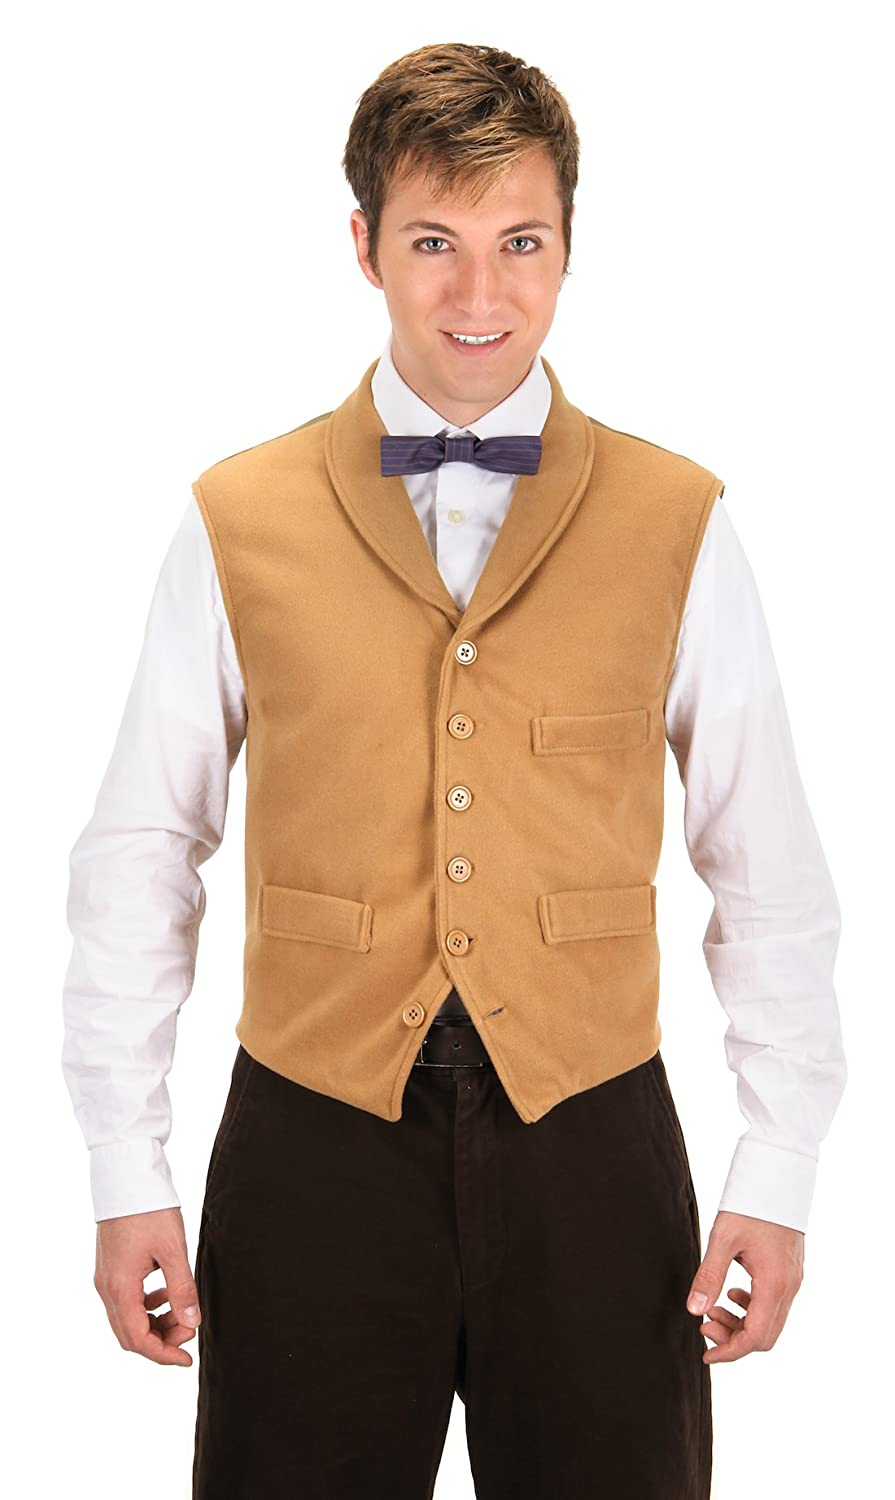 1920s Men's Costumes: Gatsby, Gangster, Peaky Blinders, Mobster, Mafia elope Fantastic Beasts and Where to FIND Them Newt Scamander Costume Vest for Adults Men $34.60 AT vintagedancer.com